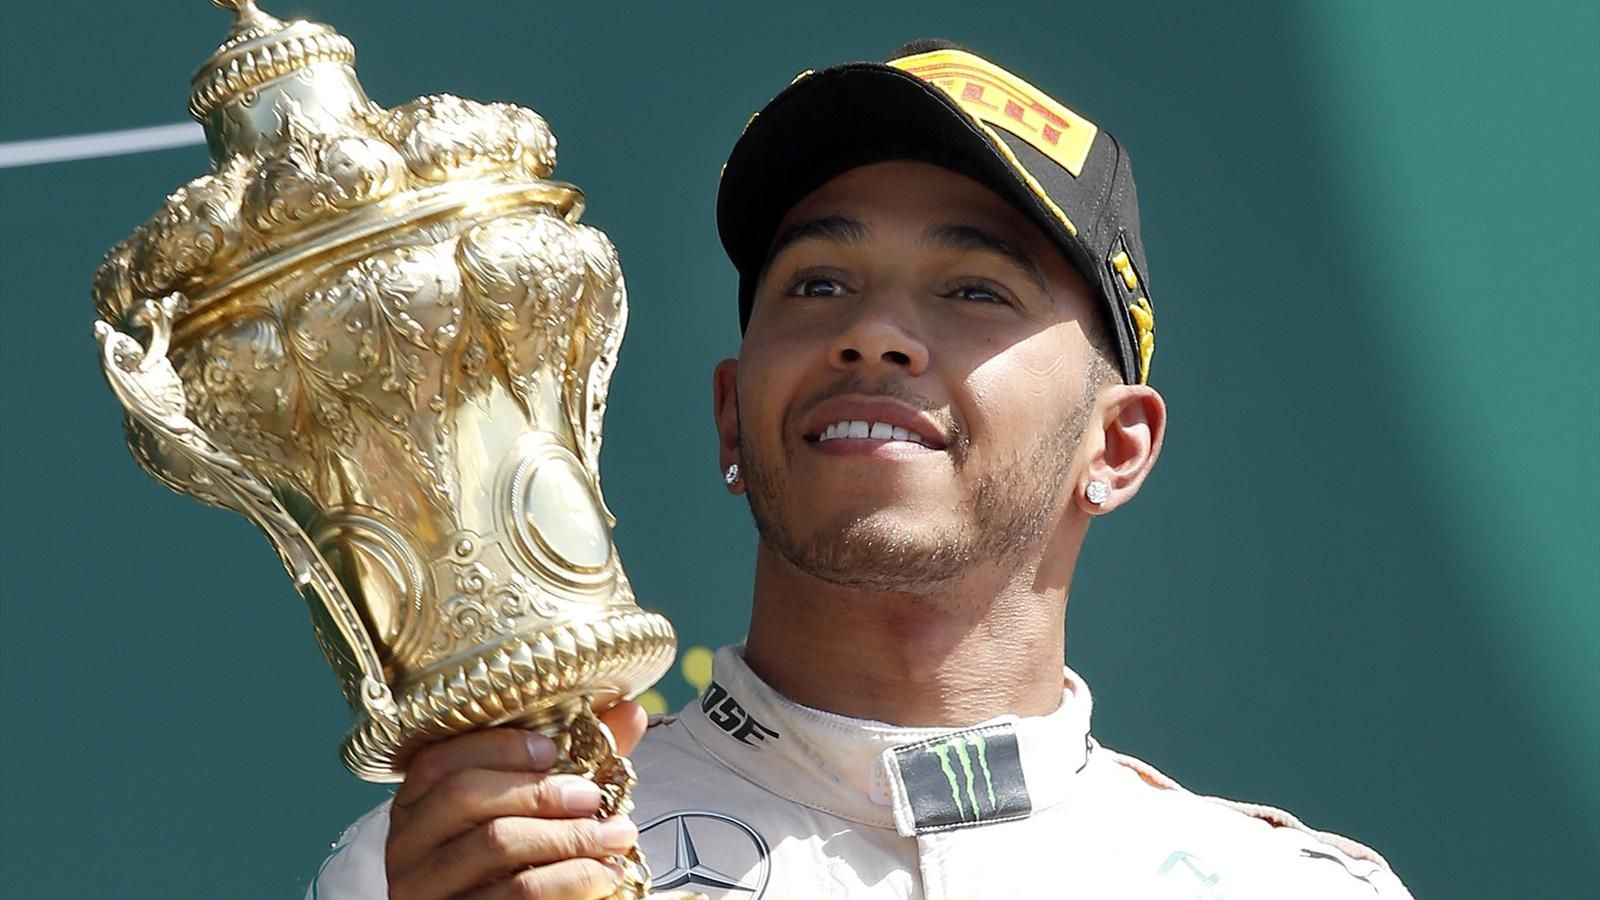 British racing champion Lewis Hamilton won the British Grand Prix at the Silverstone racetrack, driving for Mercedes. (Photo Public Domain)